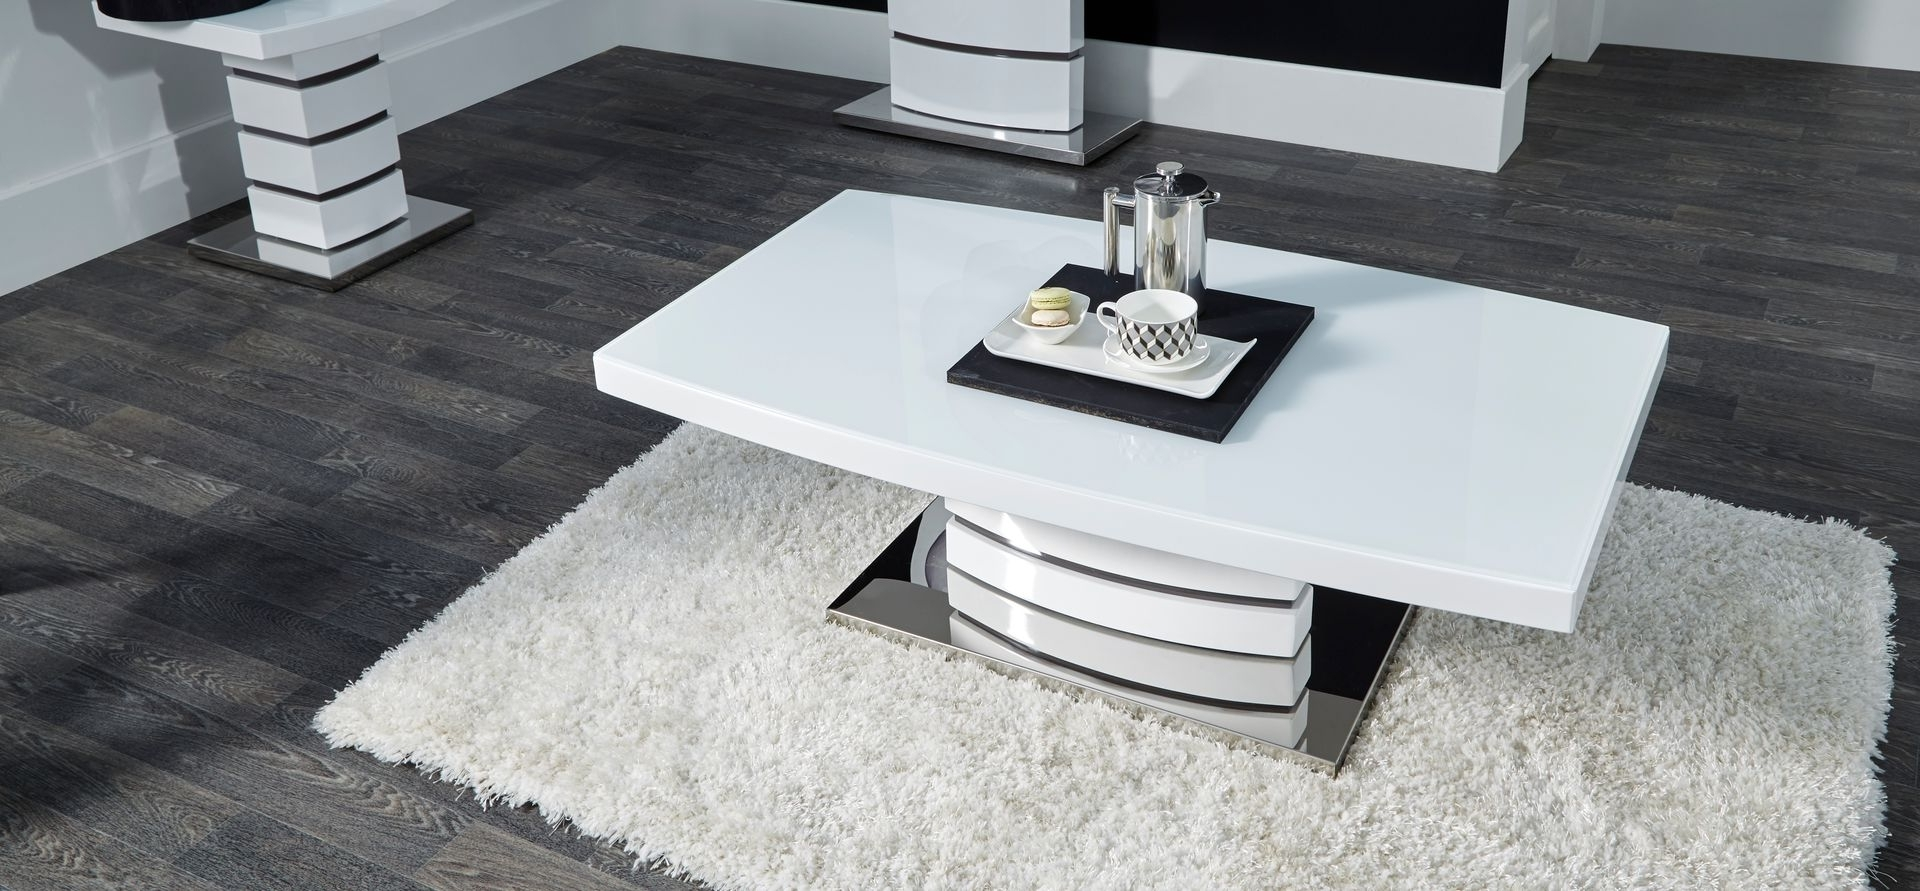 New Soho White Coffee Table – Scs Intended For Most Recently Released Scs Dining Room Furniture (Gallery 11 of 25)